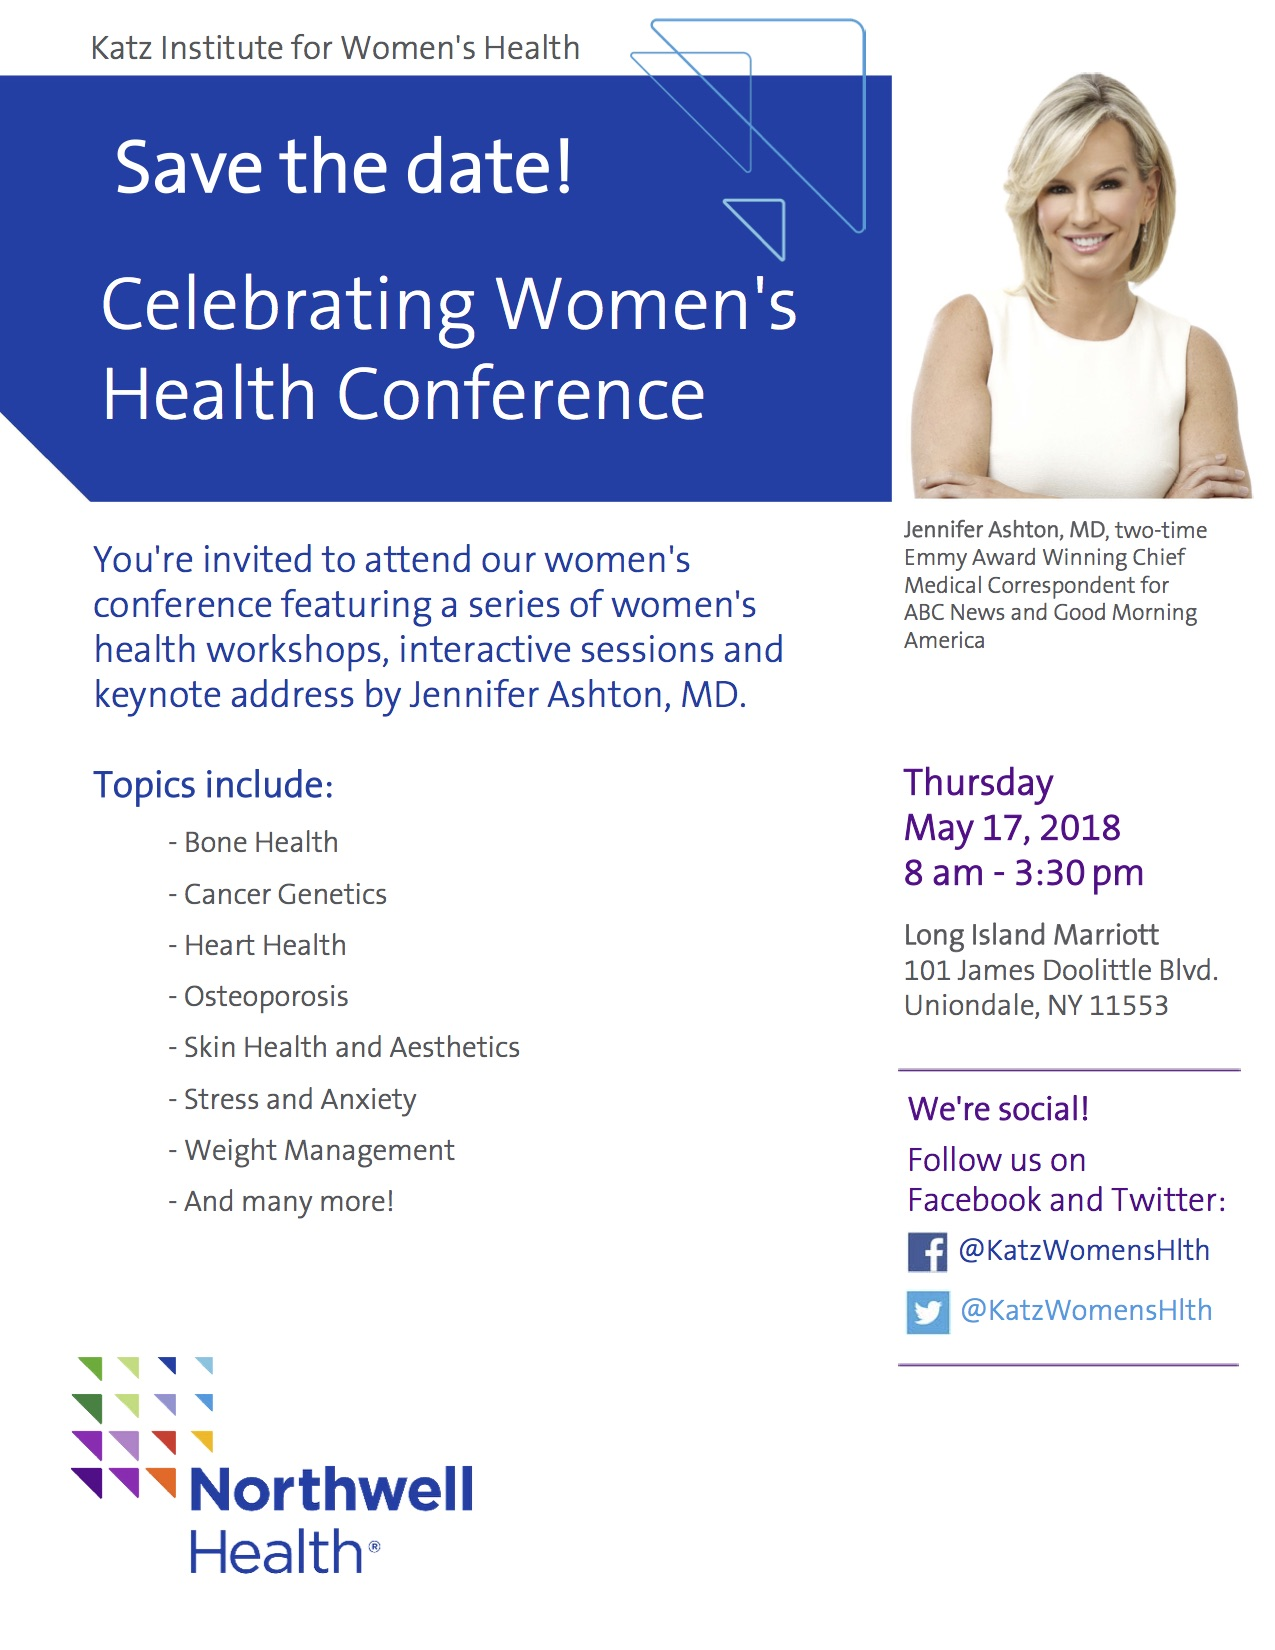 Celebrating Women's Health Conference